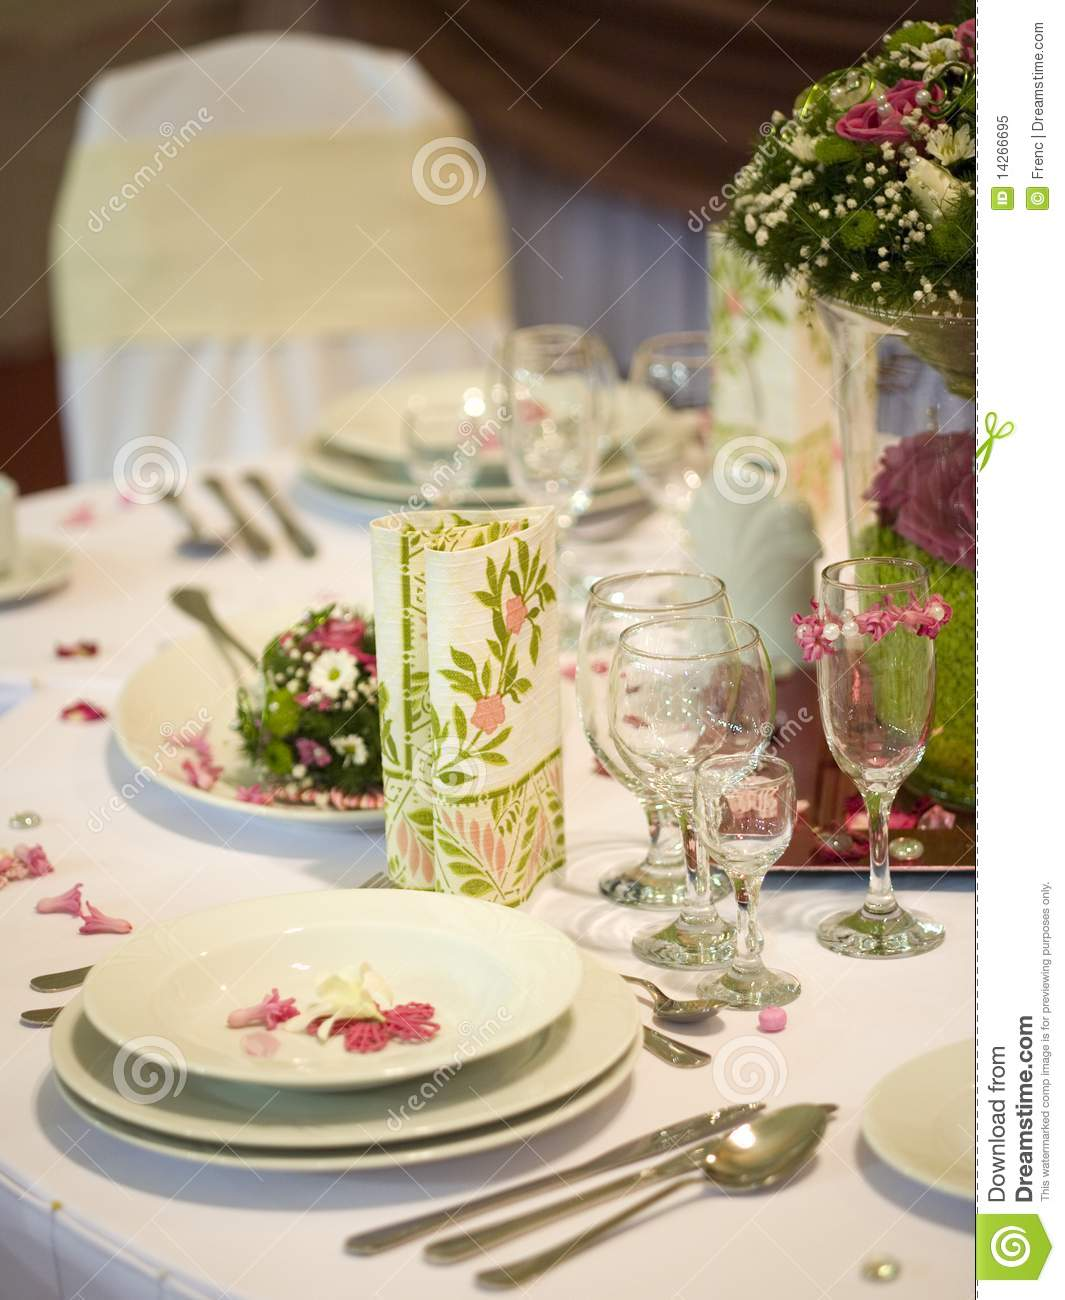 Dinner table with flowers royalty free stock photo image for Dinner table flowers